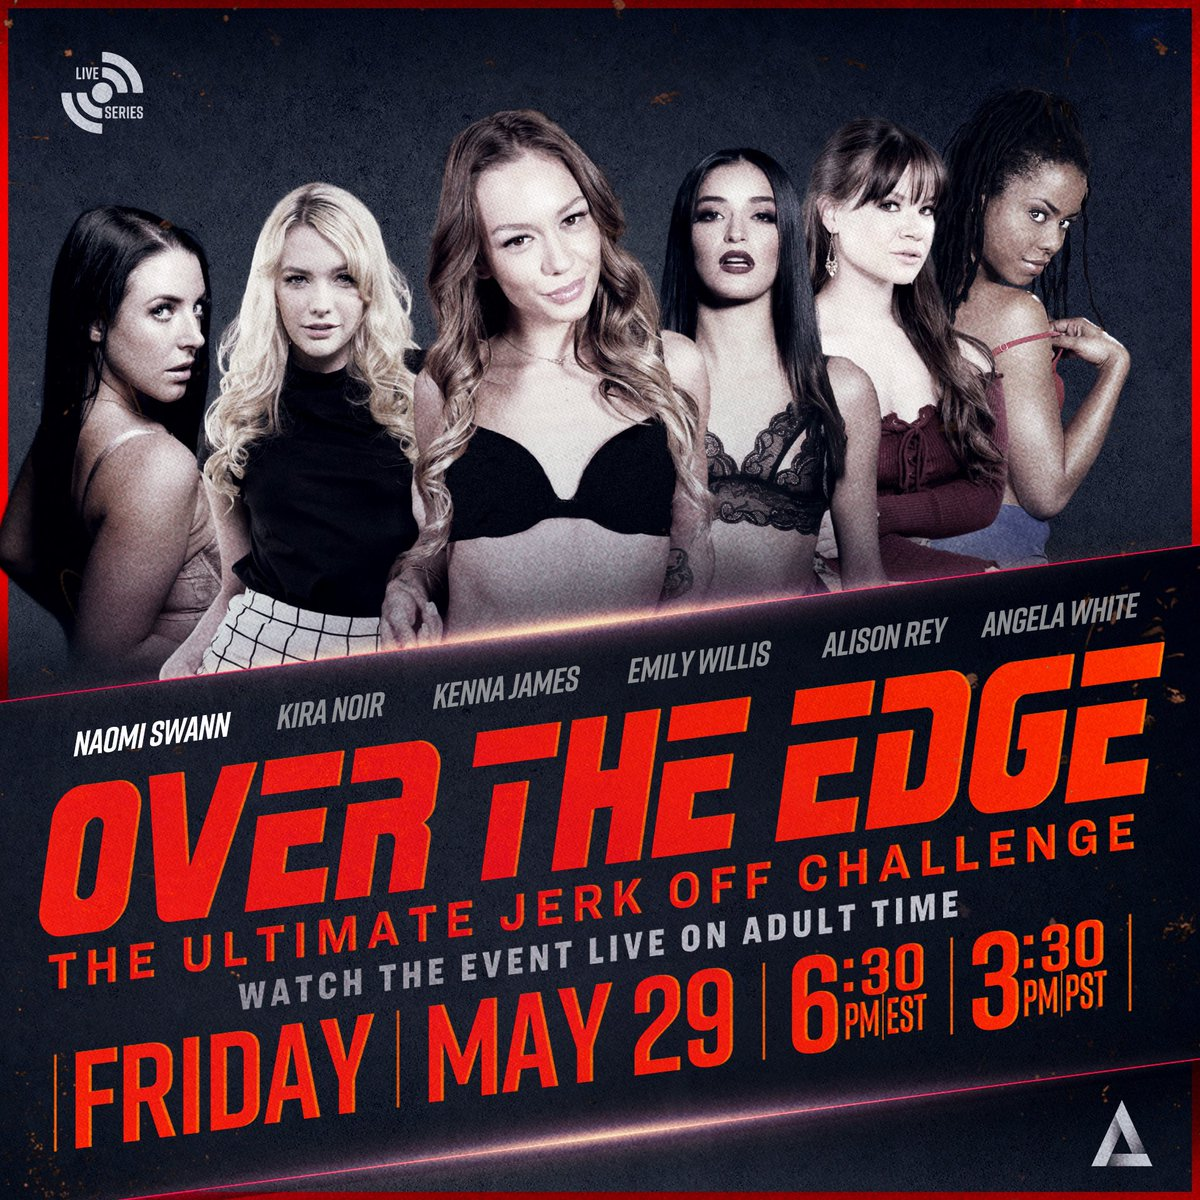 Who thinks they're ready for THE ULTIMATE JERK OFF CHALLENGE?  Watch as @ANGELAWHITE hosts me, @thekiranoir , @kennajames21 , @emilywillisxoxo and @AlisonReyxxx through dares, games and challenges 😈  Tune in LIVE this Friday, MAY 29th @ 3:30 PST 🚨❣️